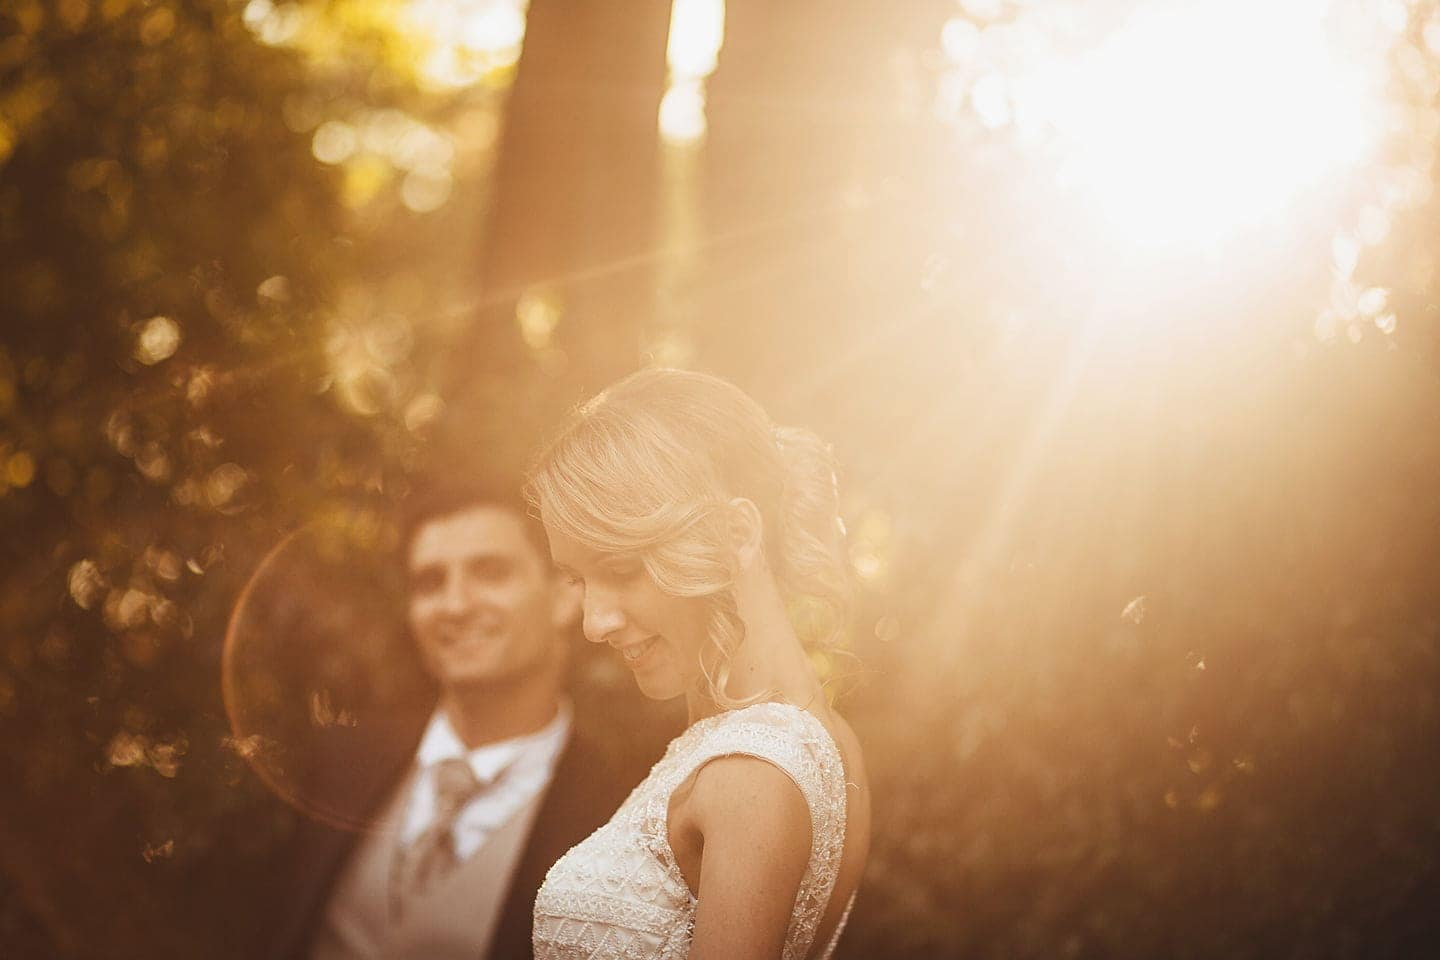 Best of wedding photography collection 2017 - by Aleks & Irena Kus 53